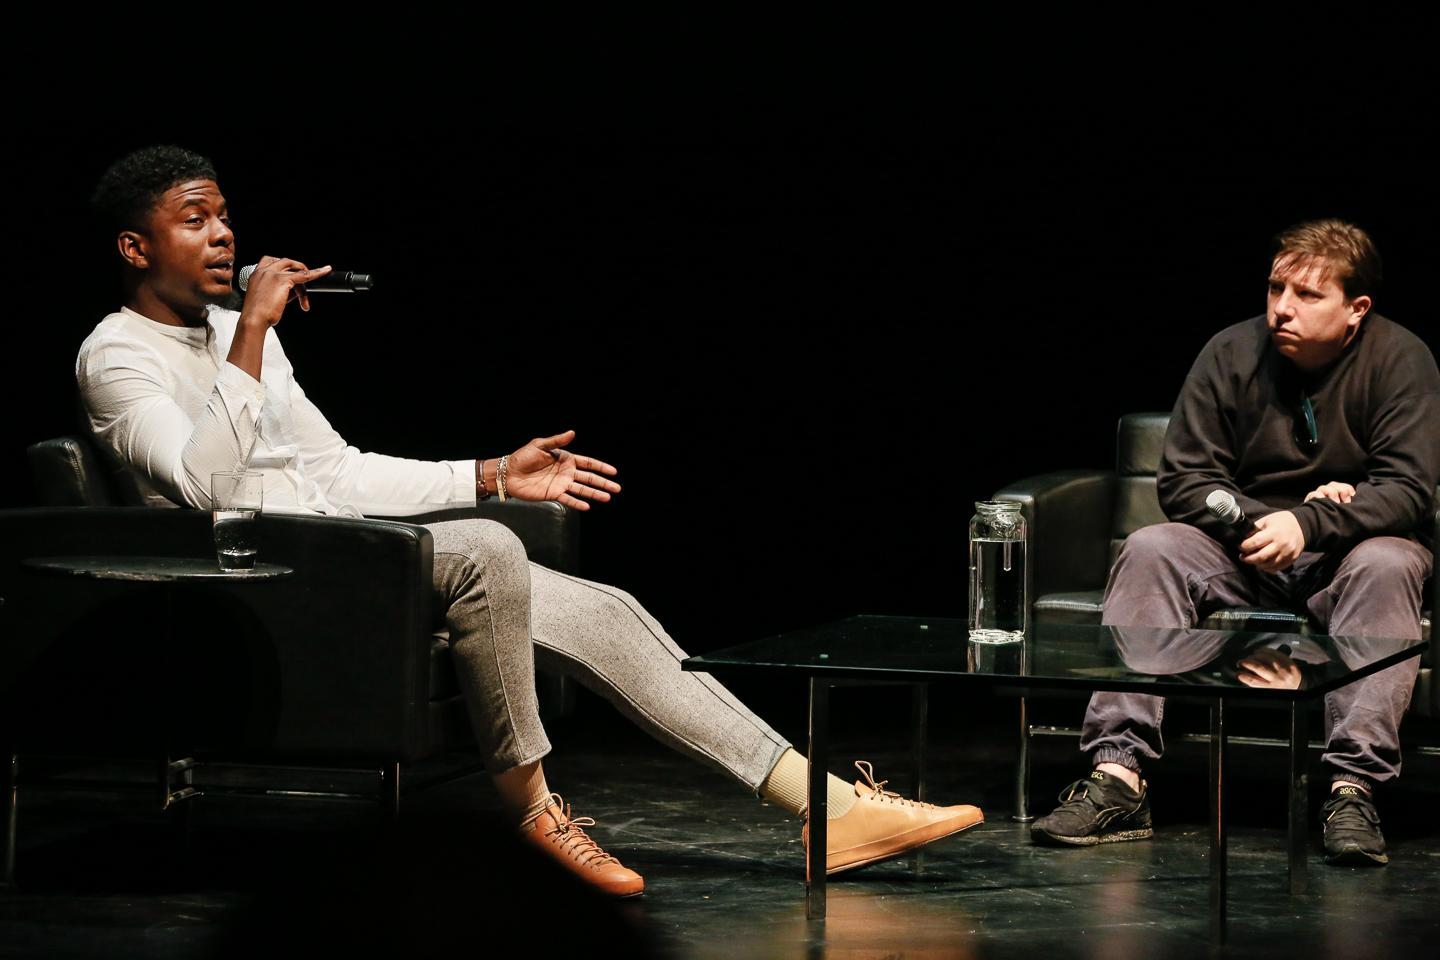 Against a black backdropped stage, a man reclines in an armchair speaking into a microphone while another leans in to listen, waiting his turn.